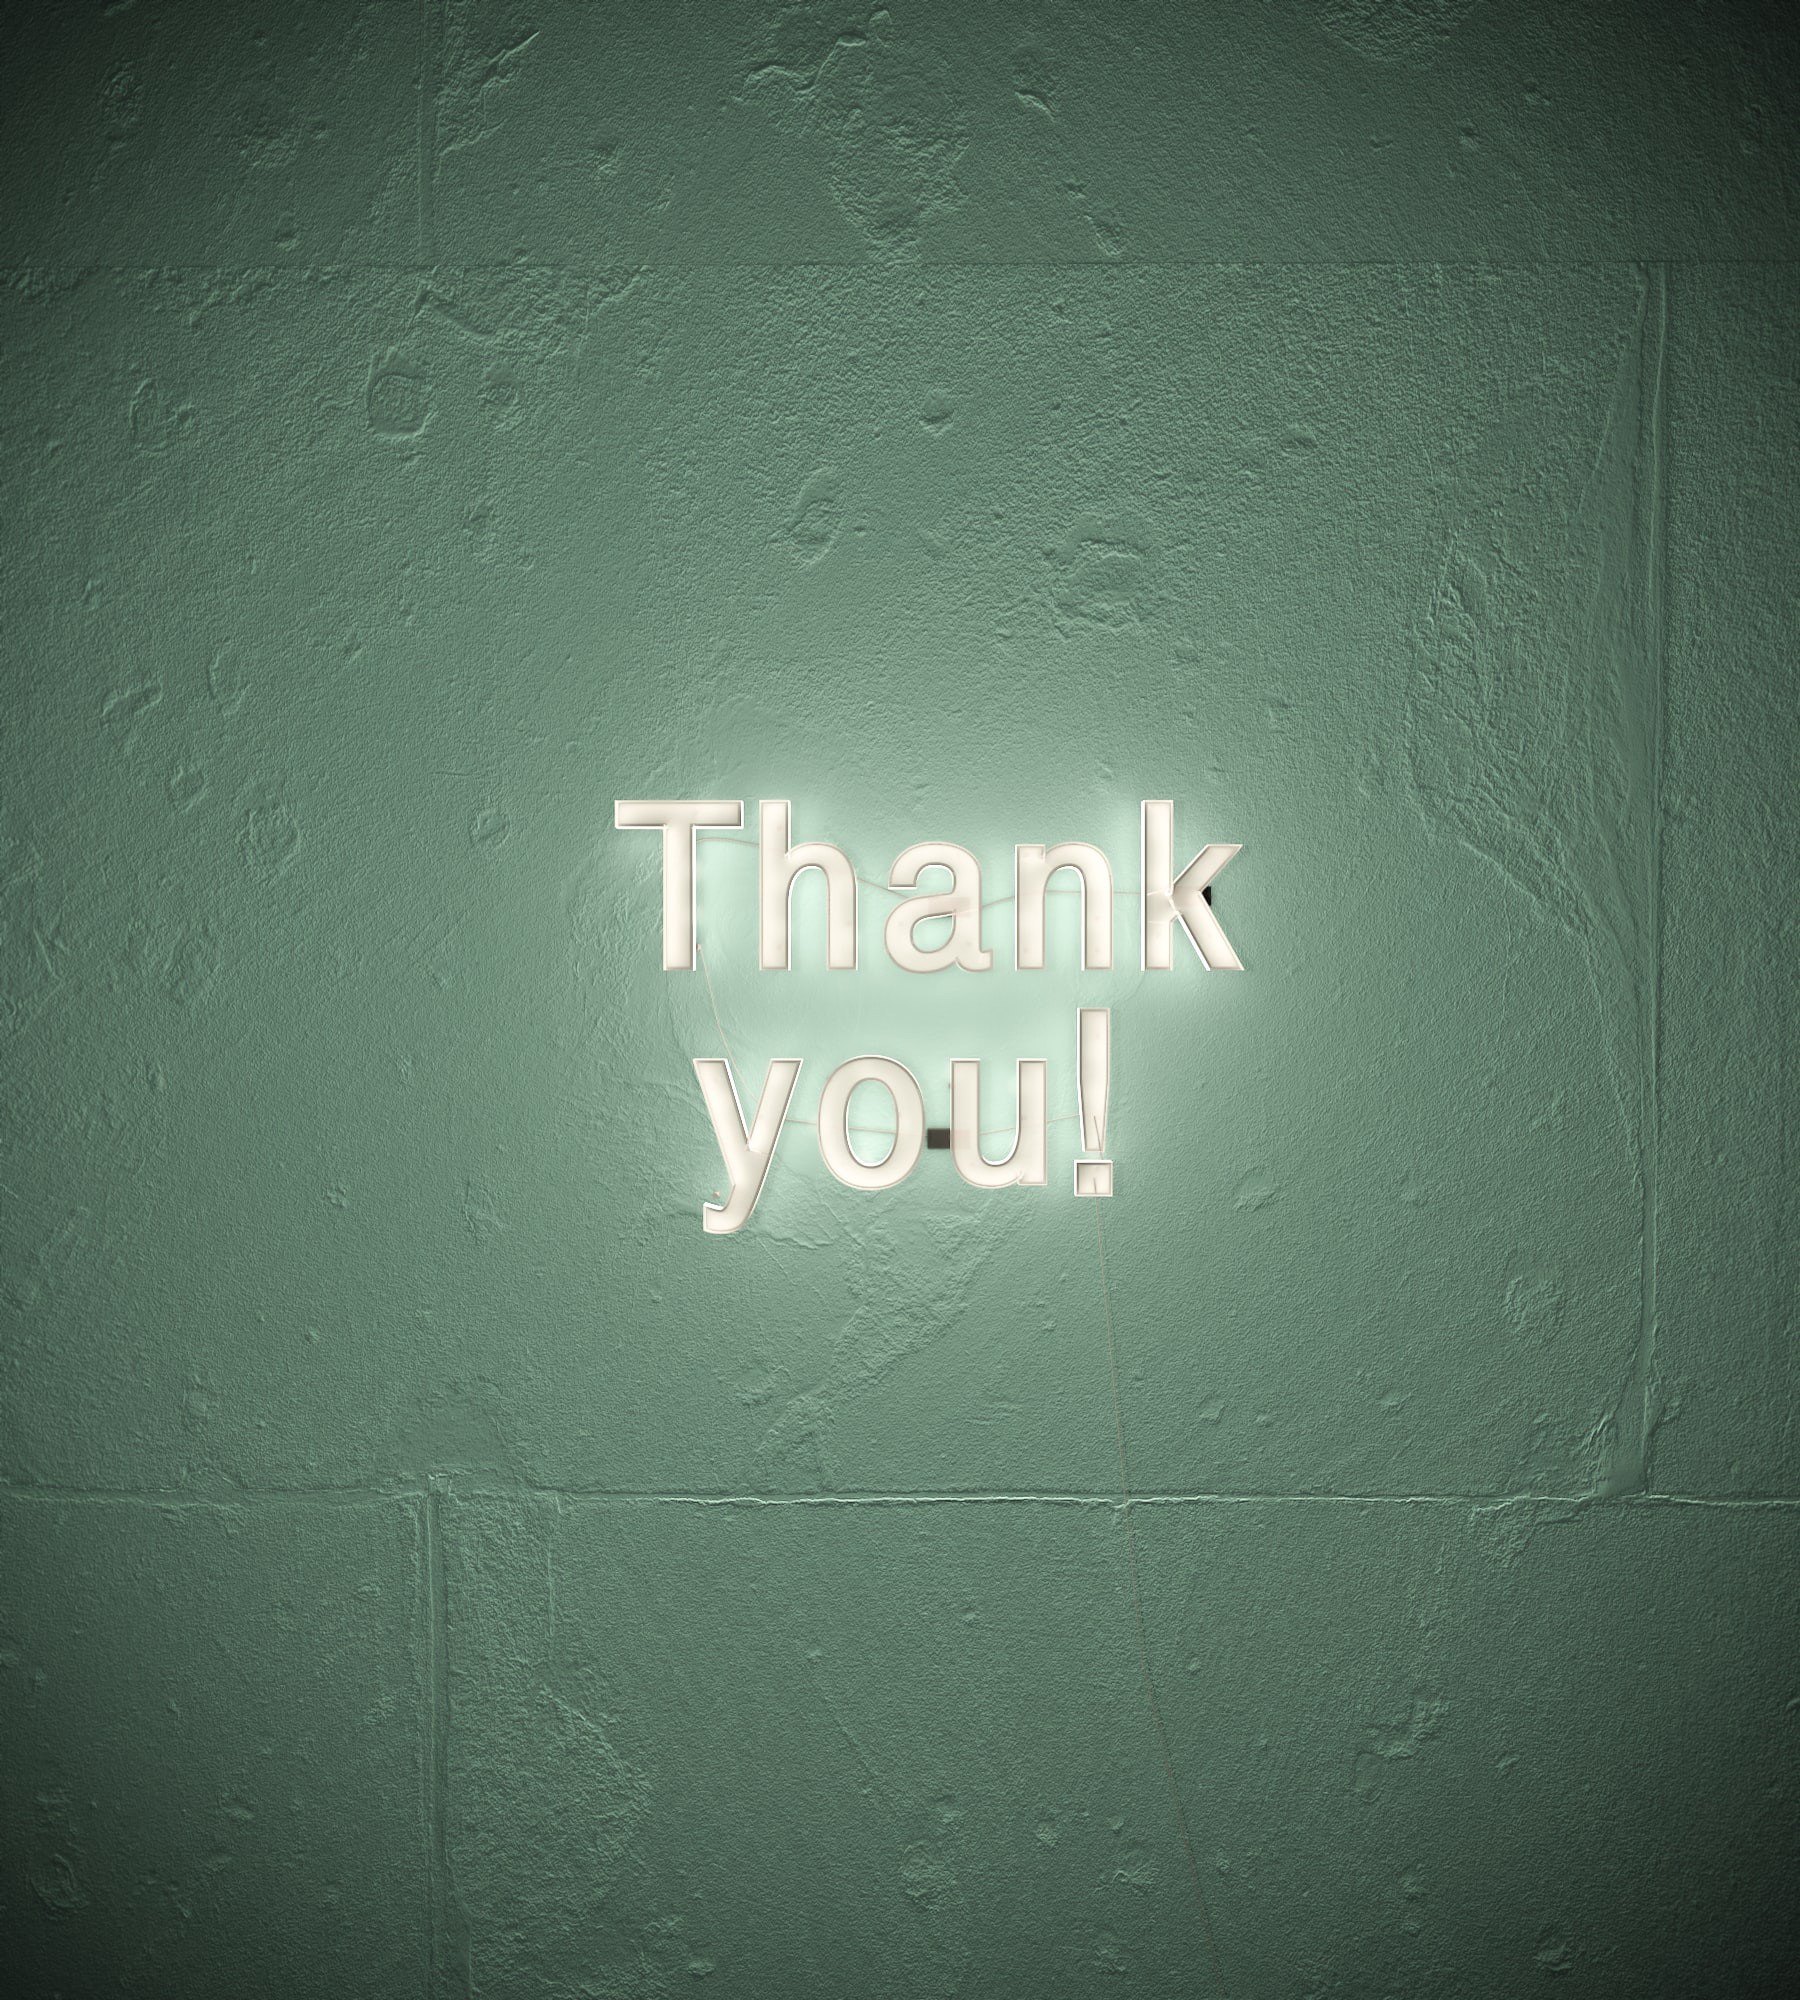 The words thank you brightly diaplayed on a dark background.